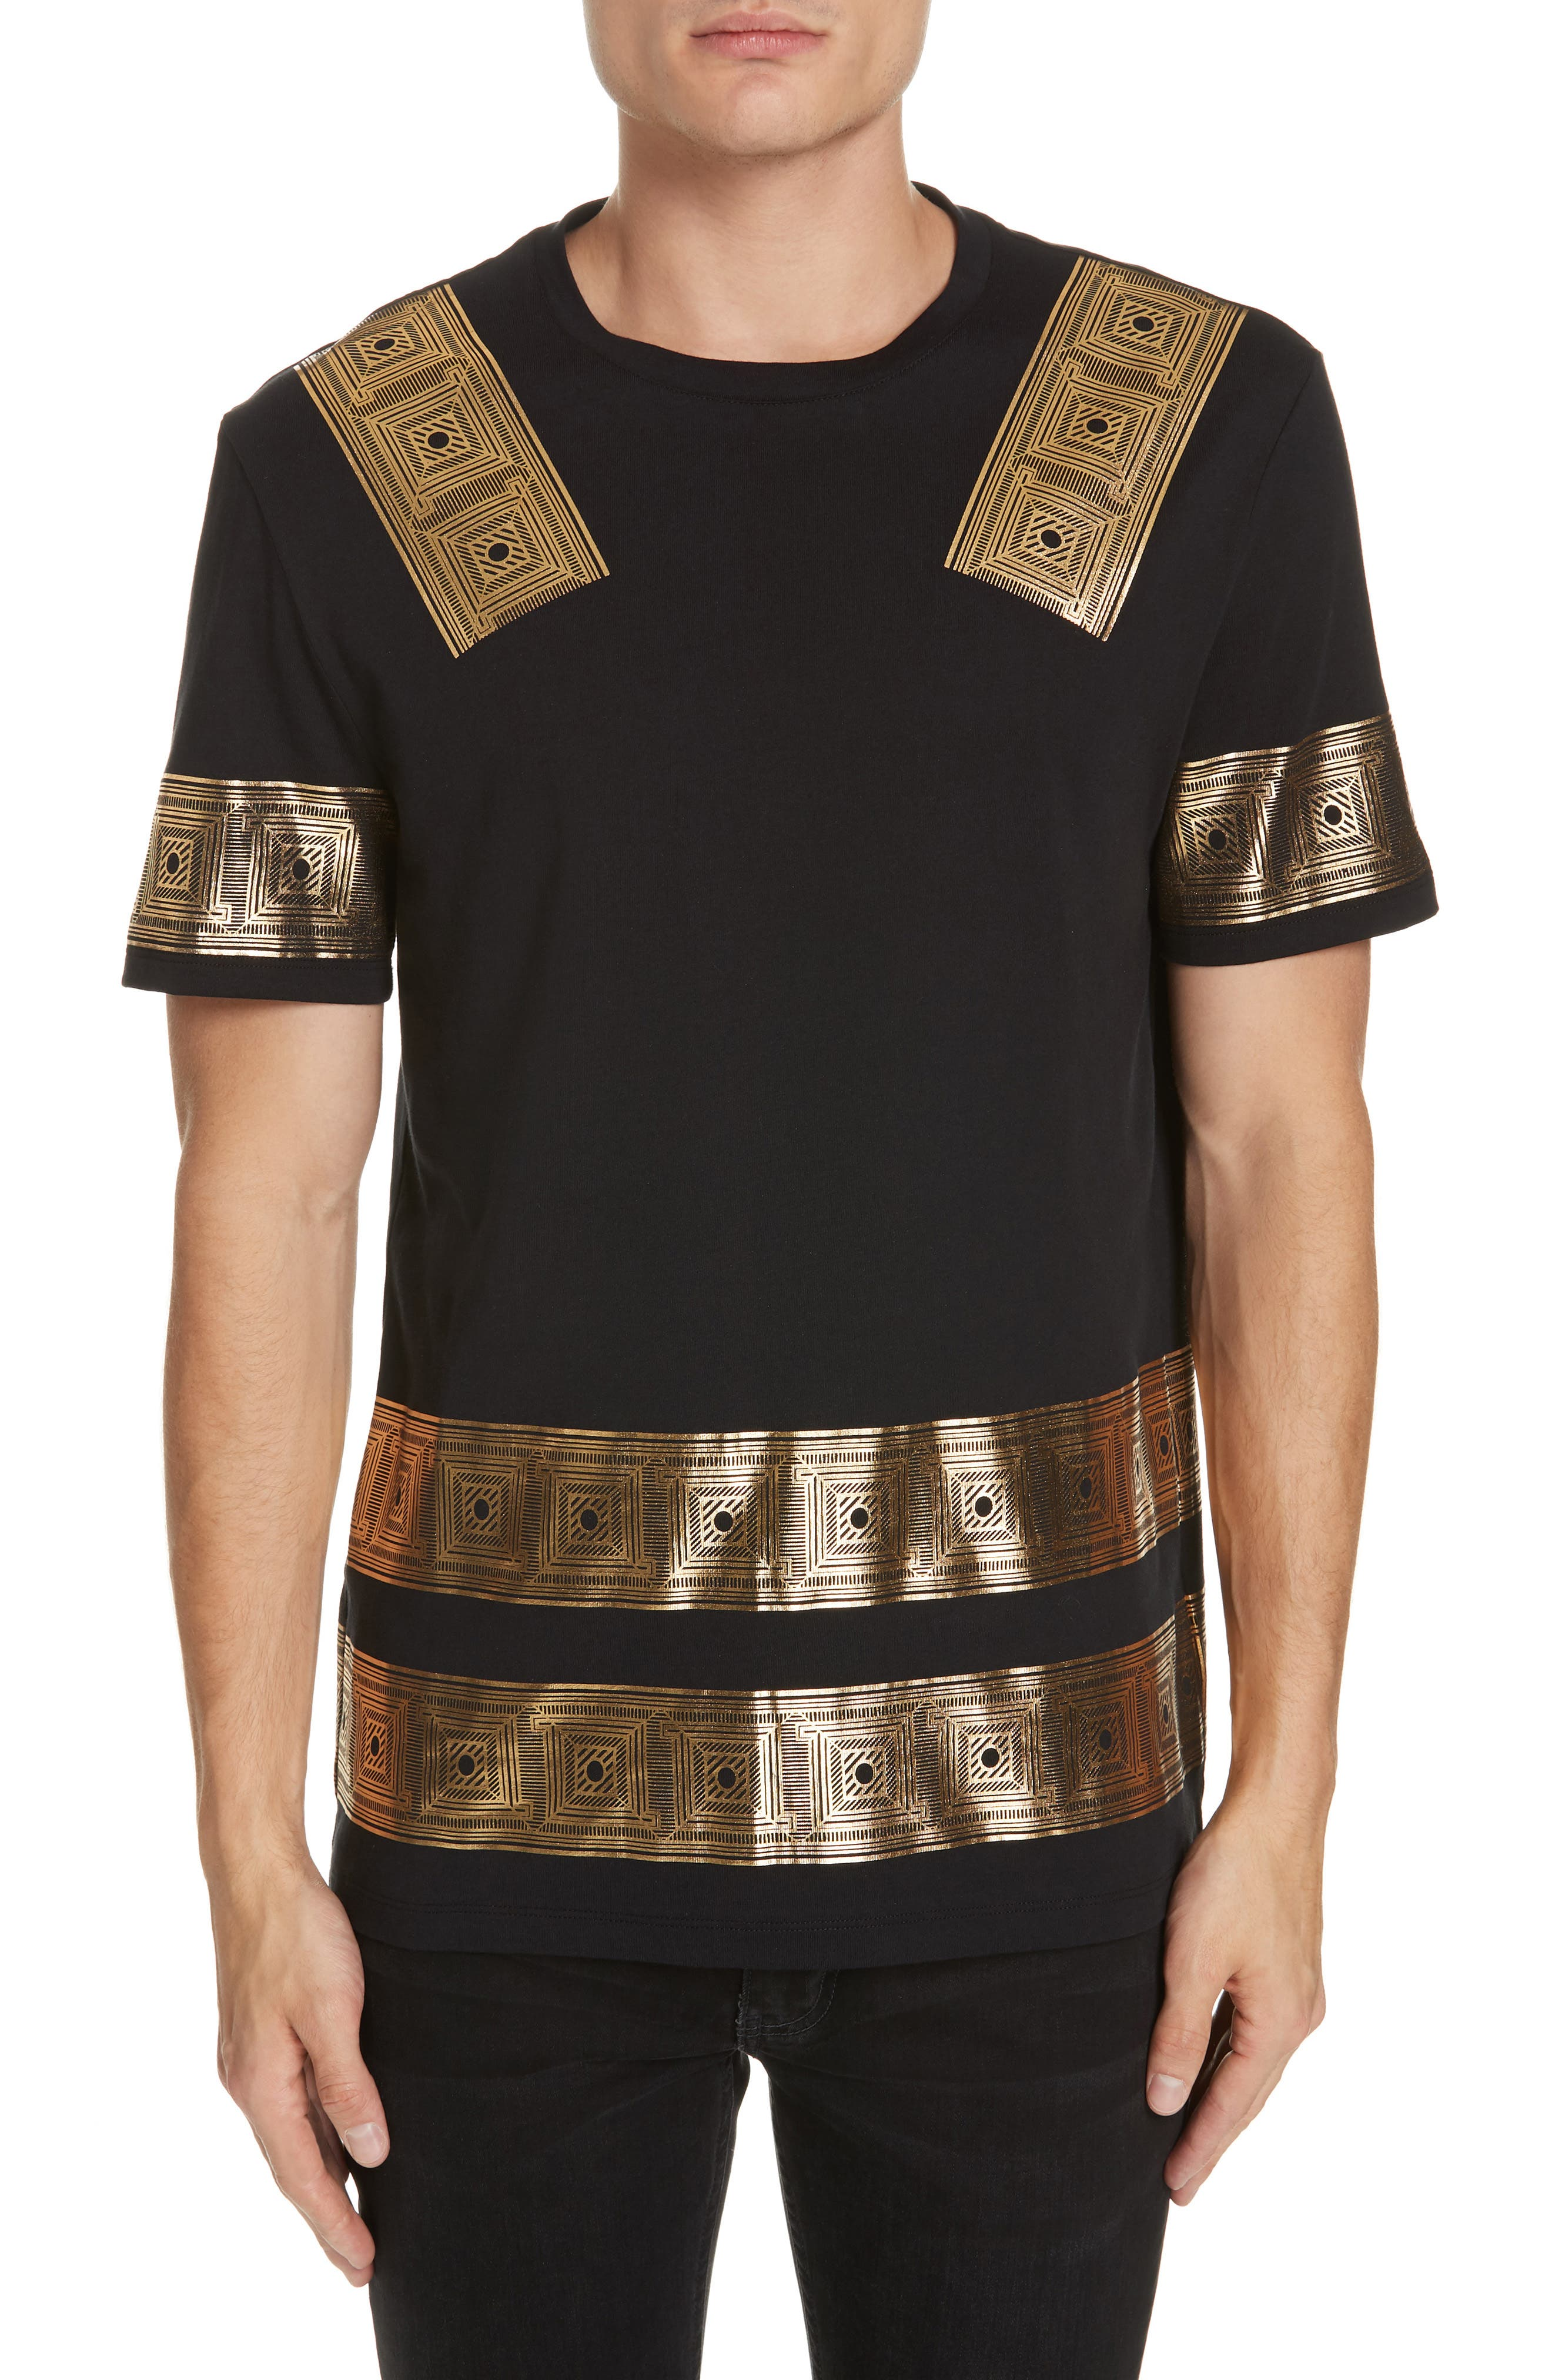 7a755ed1 Versace Men's T-Shirts, stylish comfort clothing